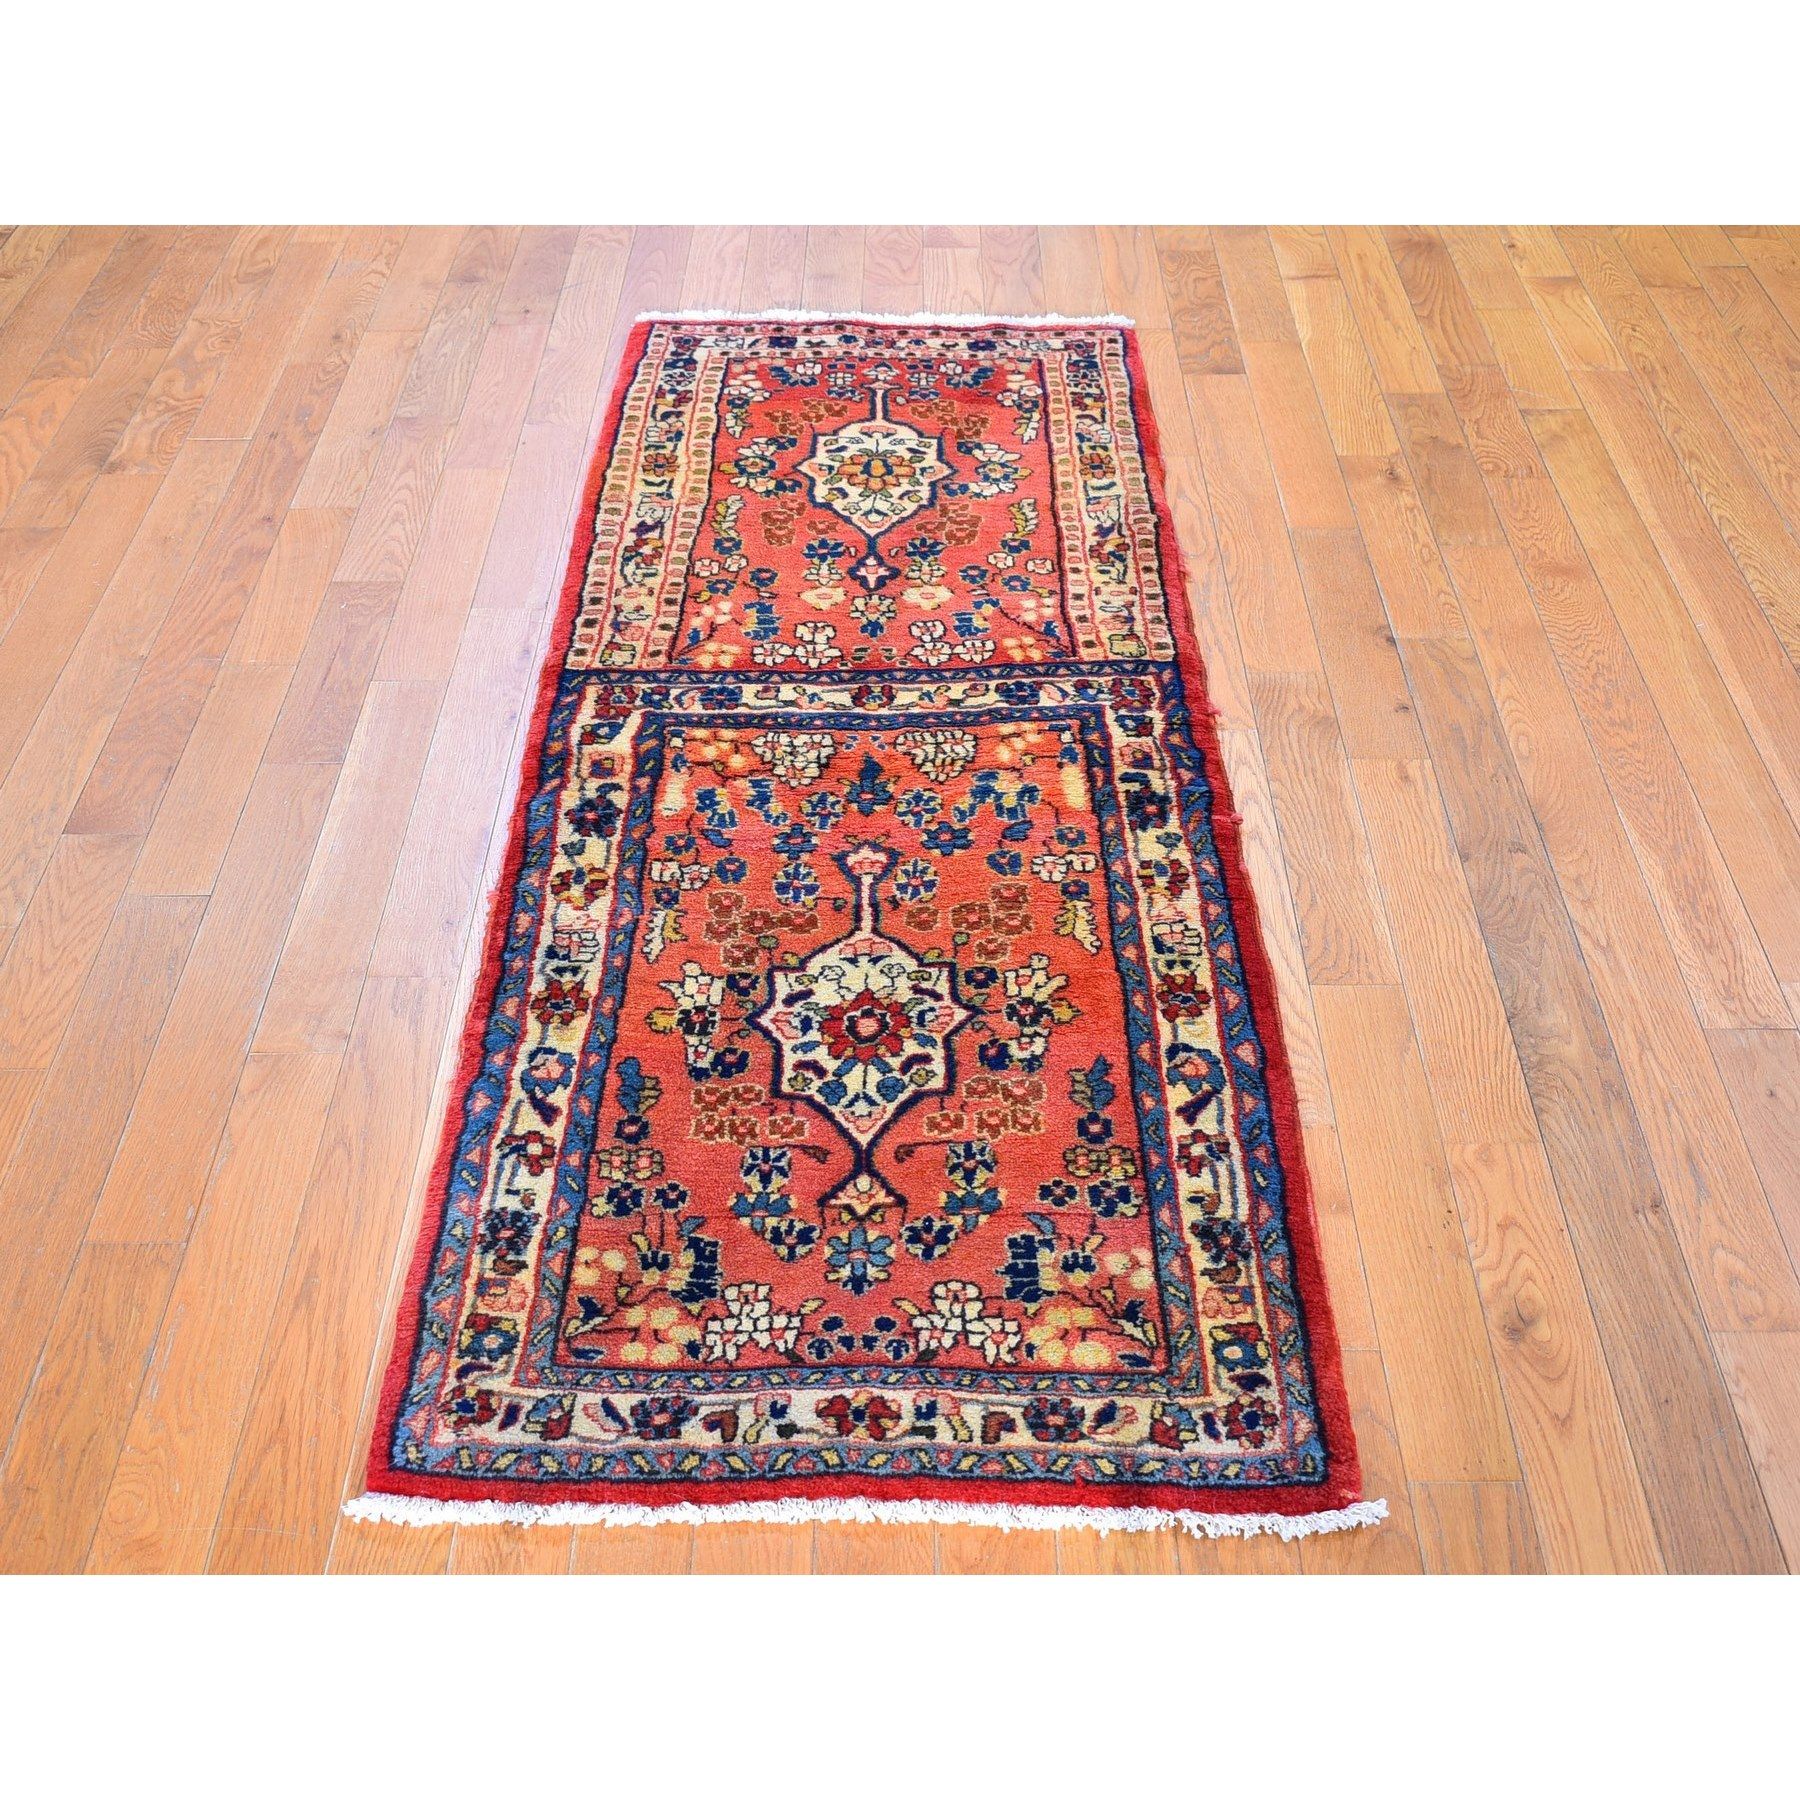 """2'4""""x6'9"""" Vintage Persian Mahal Rug on Rug Design Peach Pure Wool Hand Knotted Wide Runner Oriental Rug"""